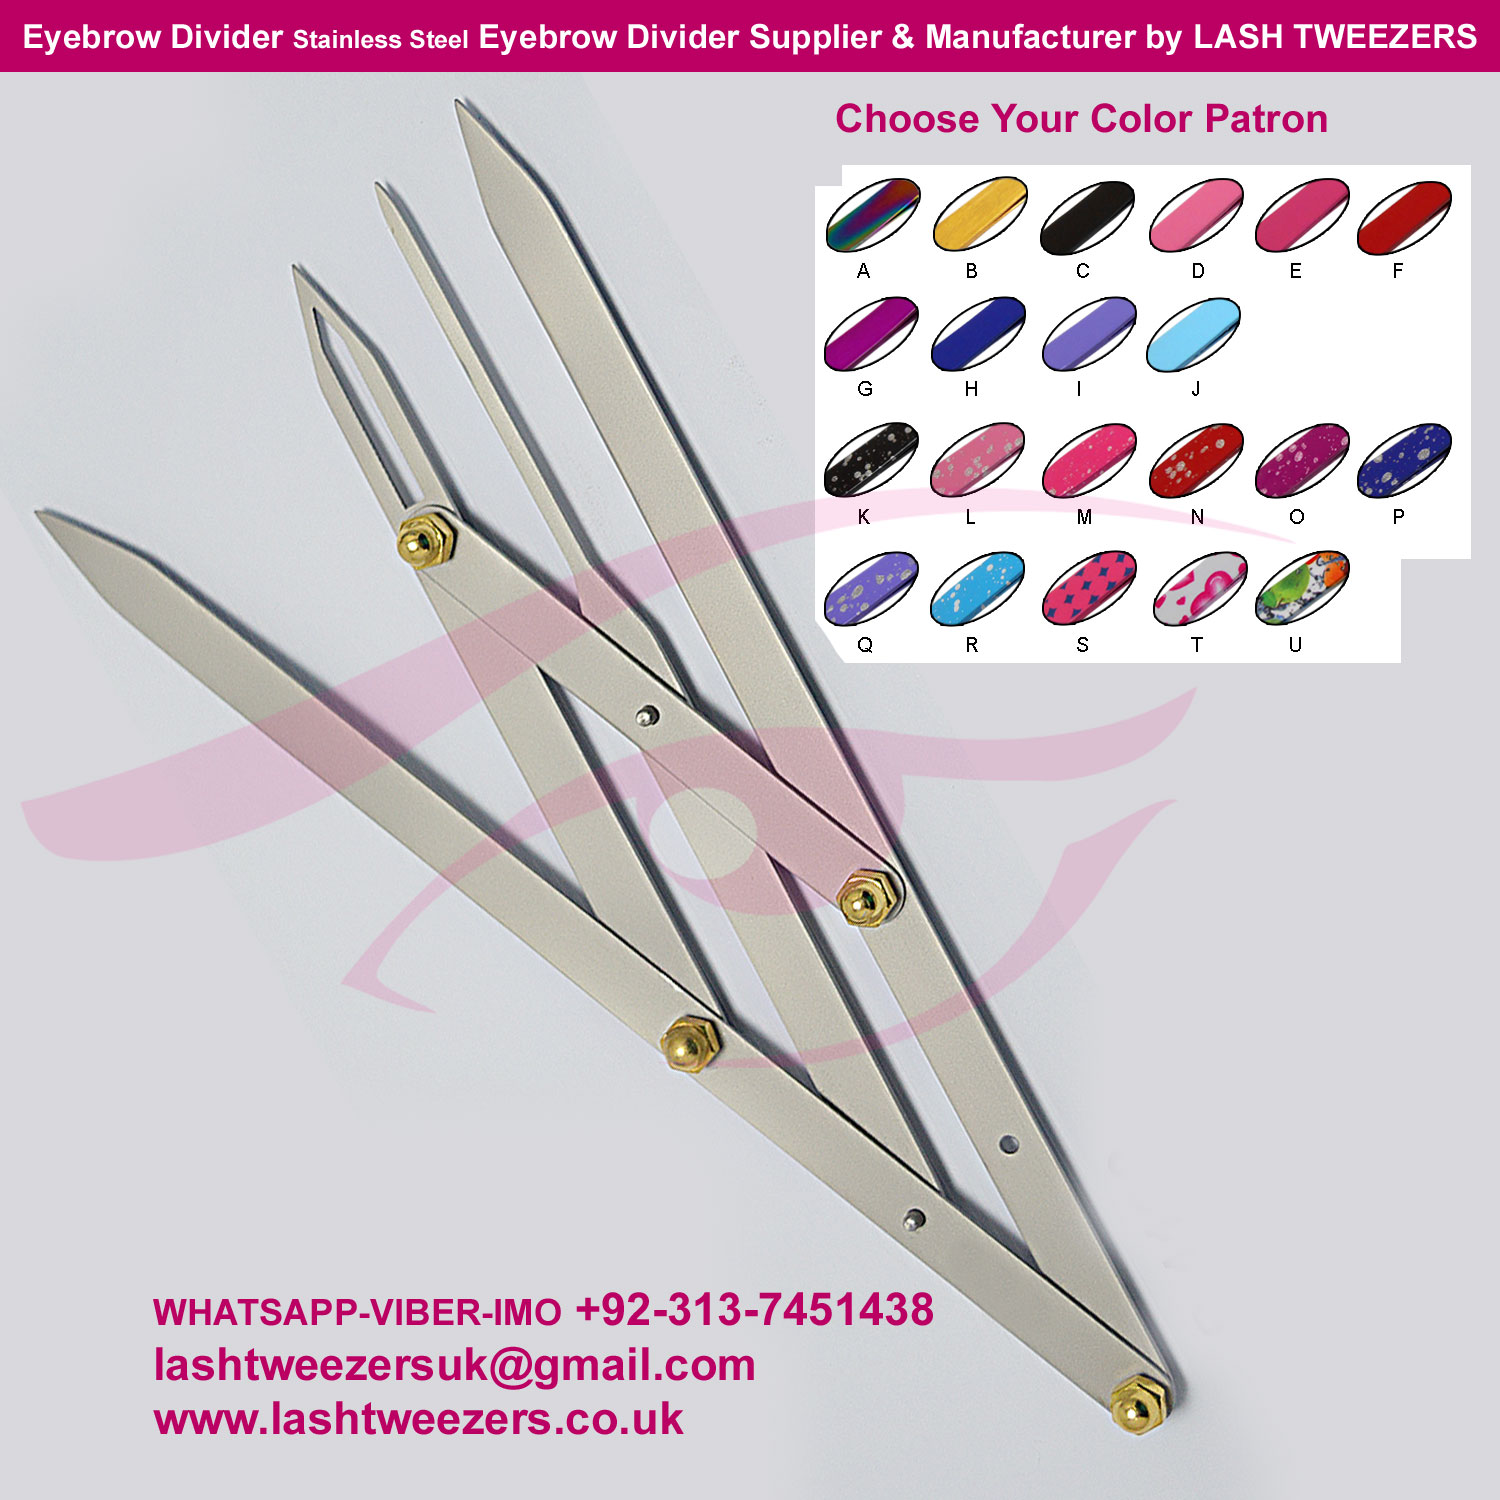 Eyebrow Divider Stainless Steel Eyebrow Divider Supplier & Manufacturer by LASH TWEEZERS